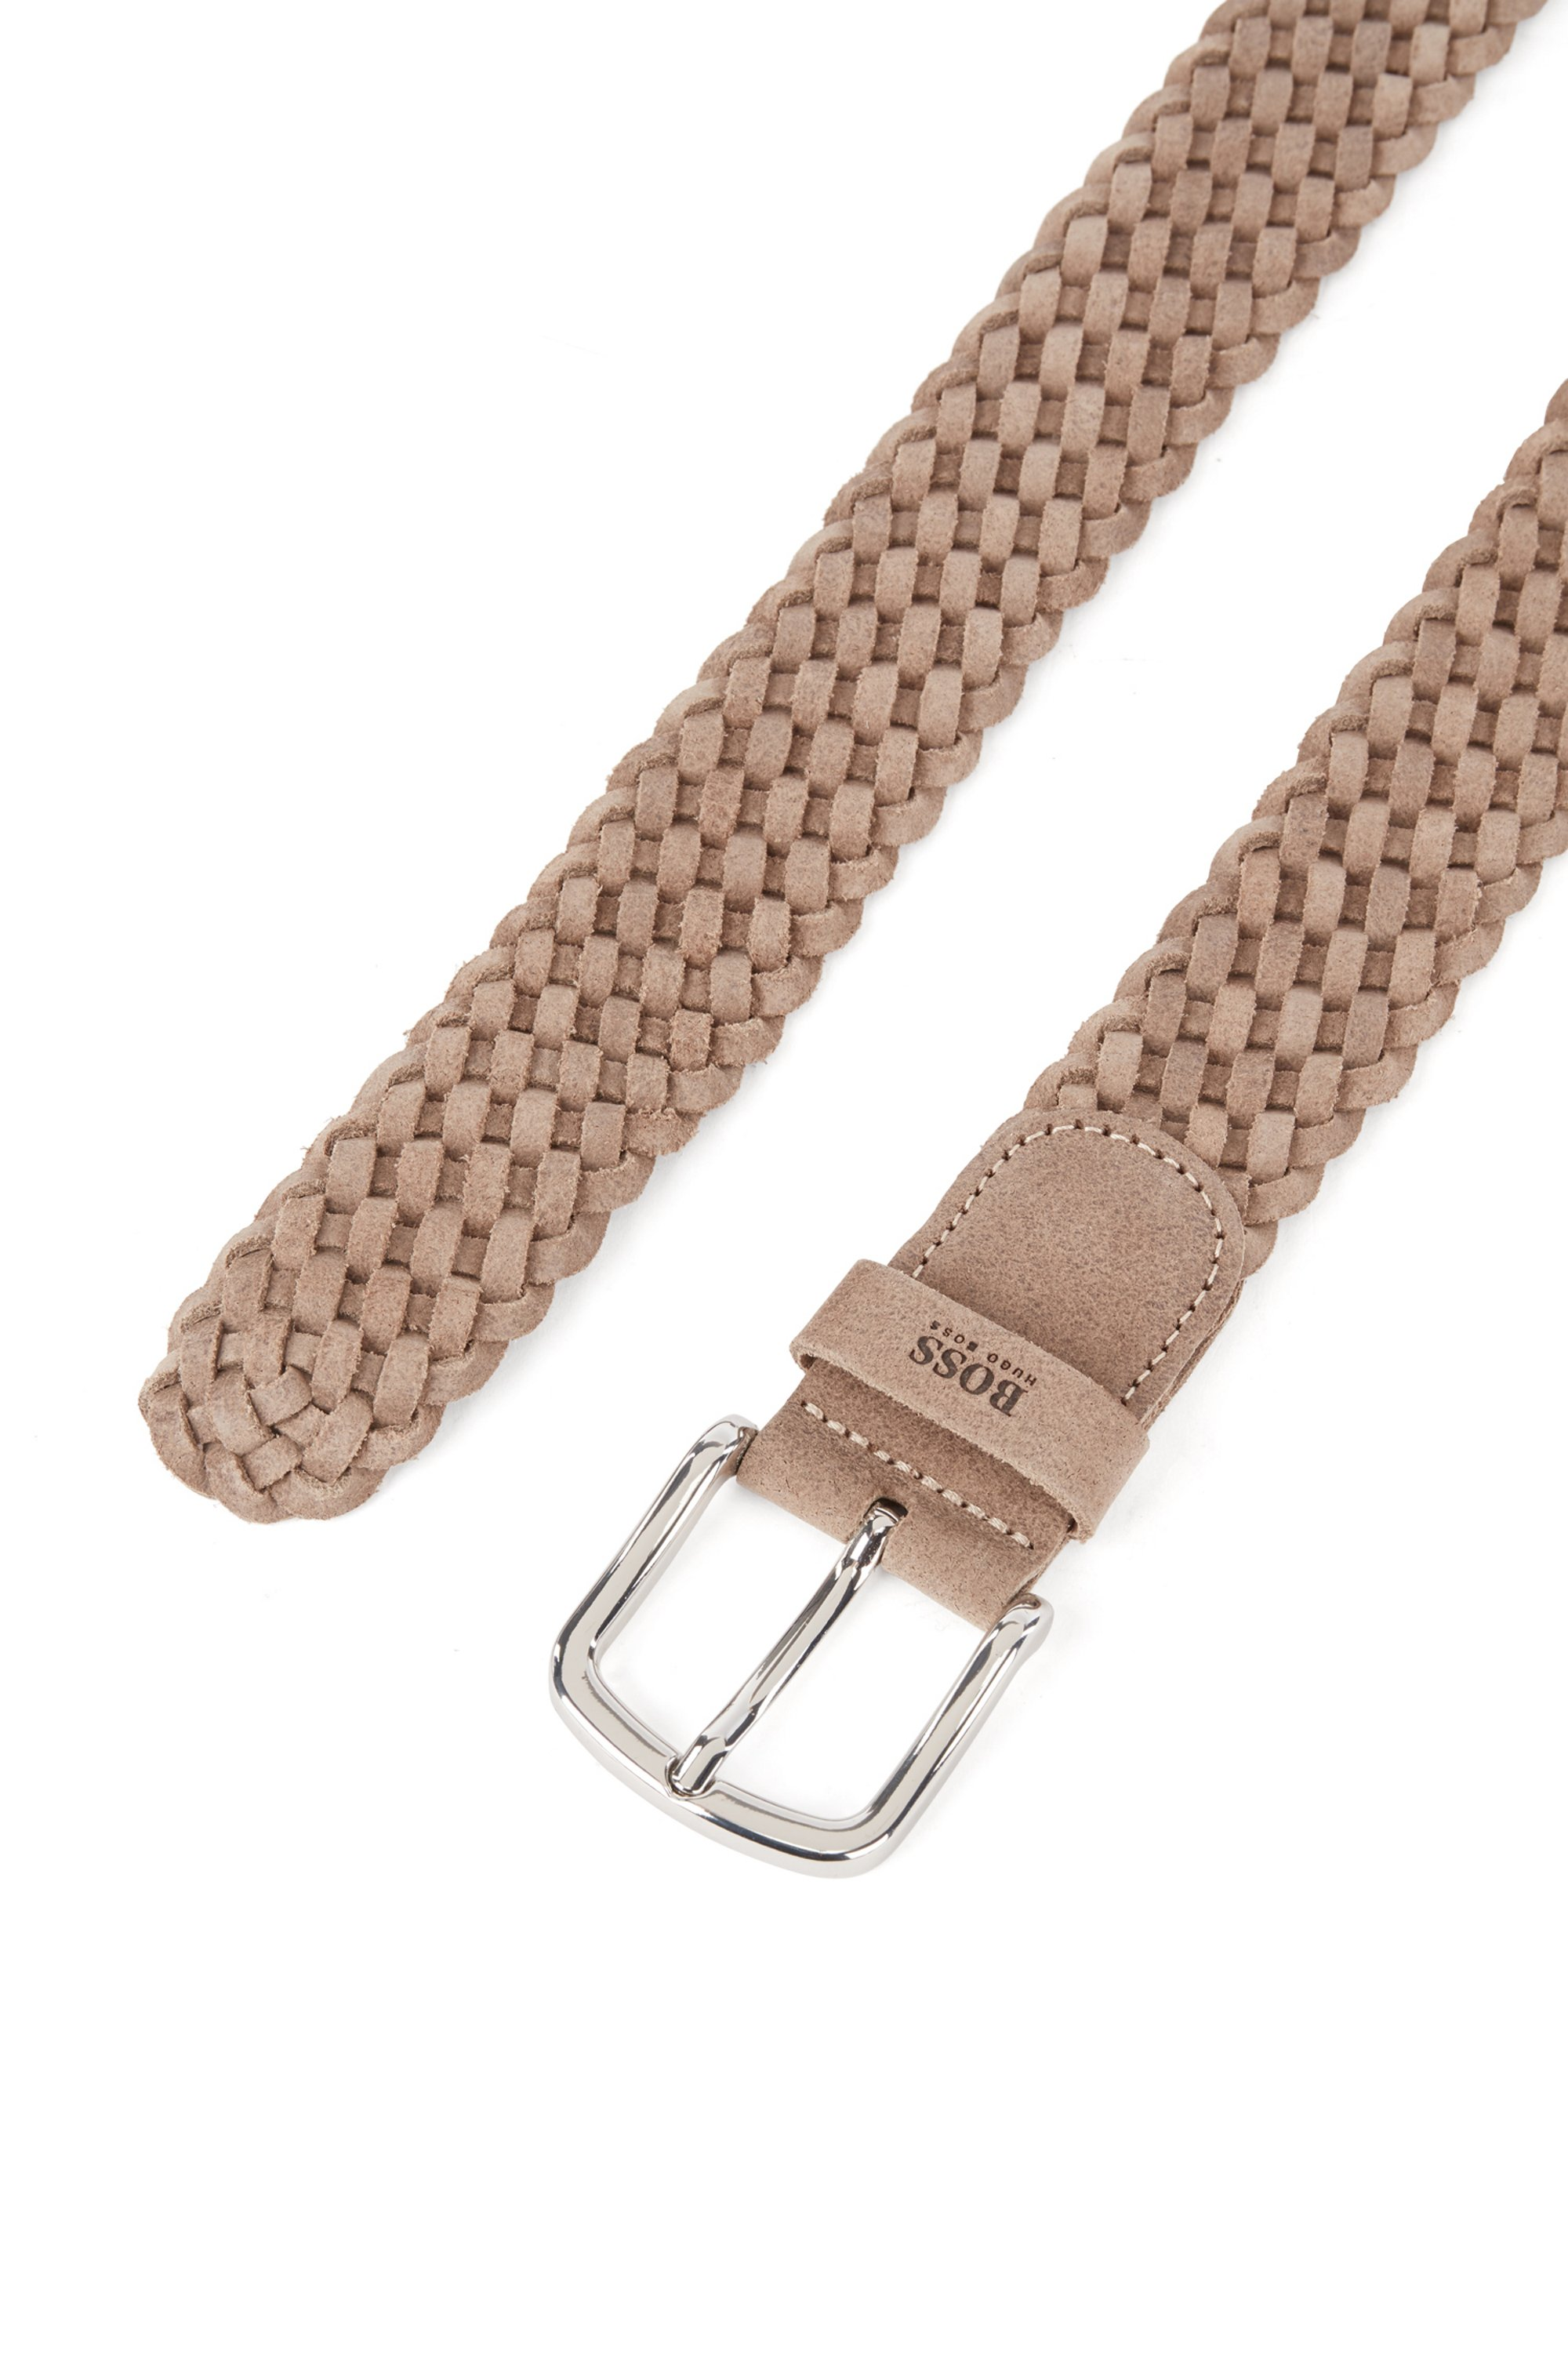 Woven belt in suede with logo keeper